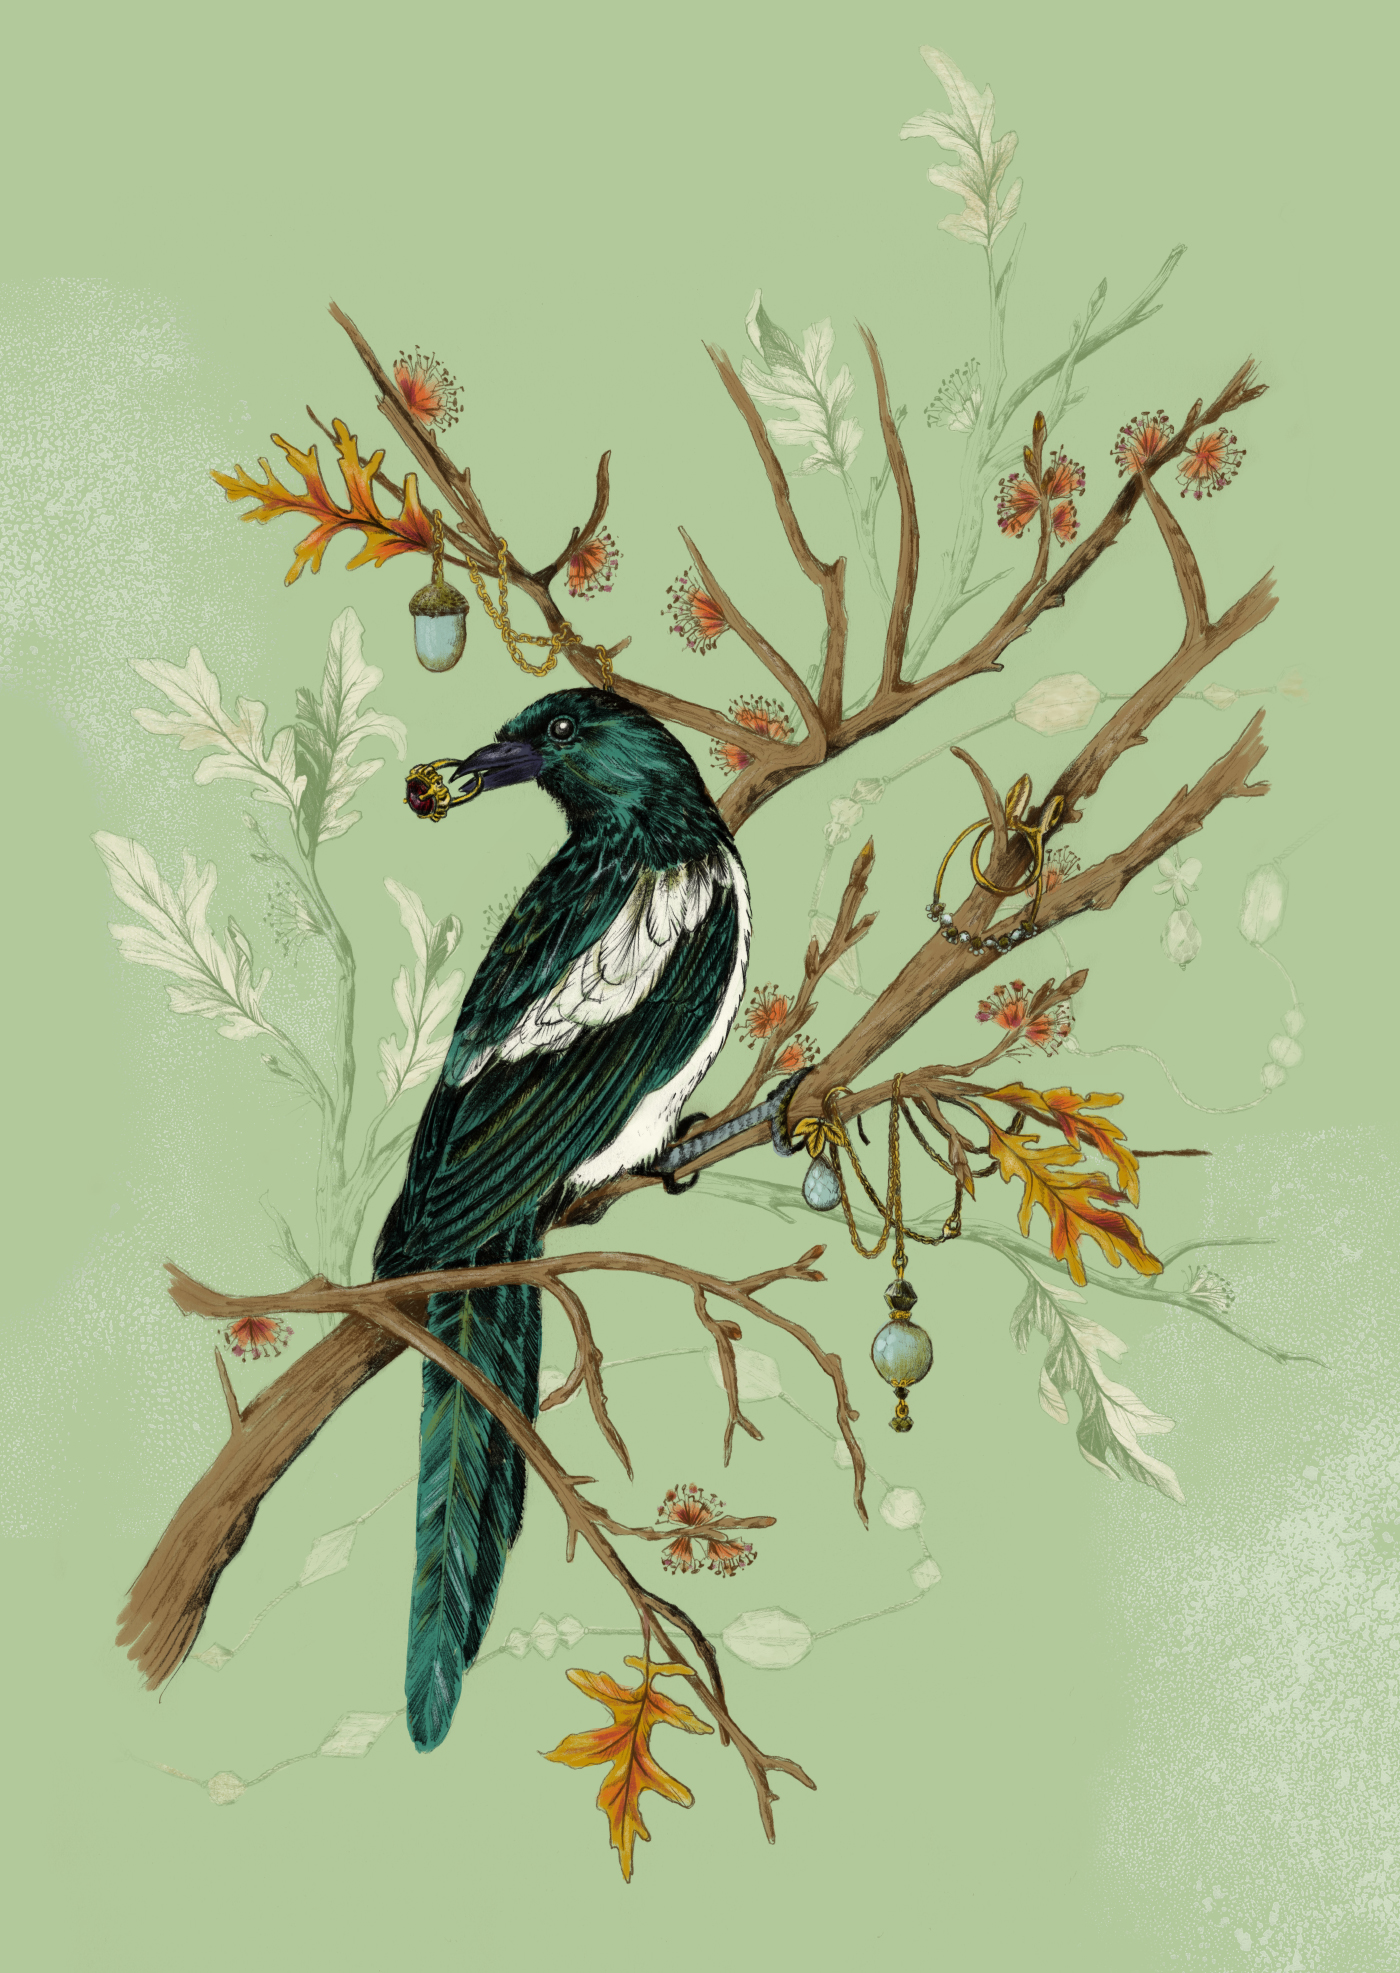 fig. 1.Magpie Jewels